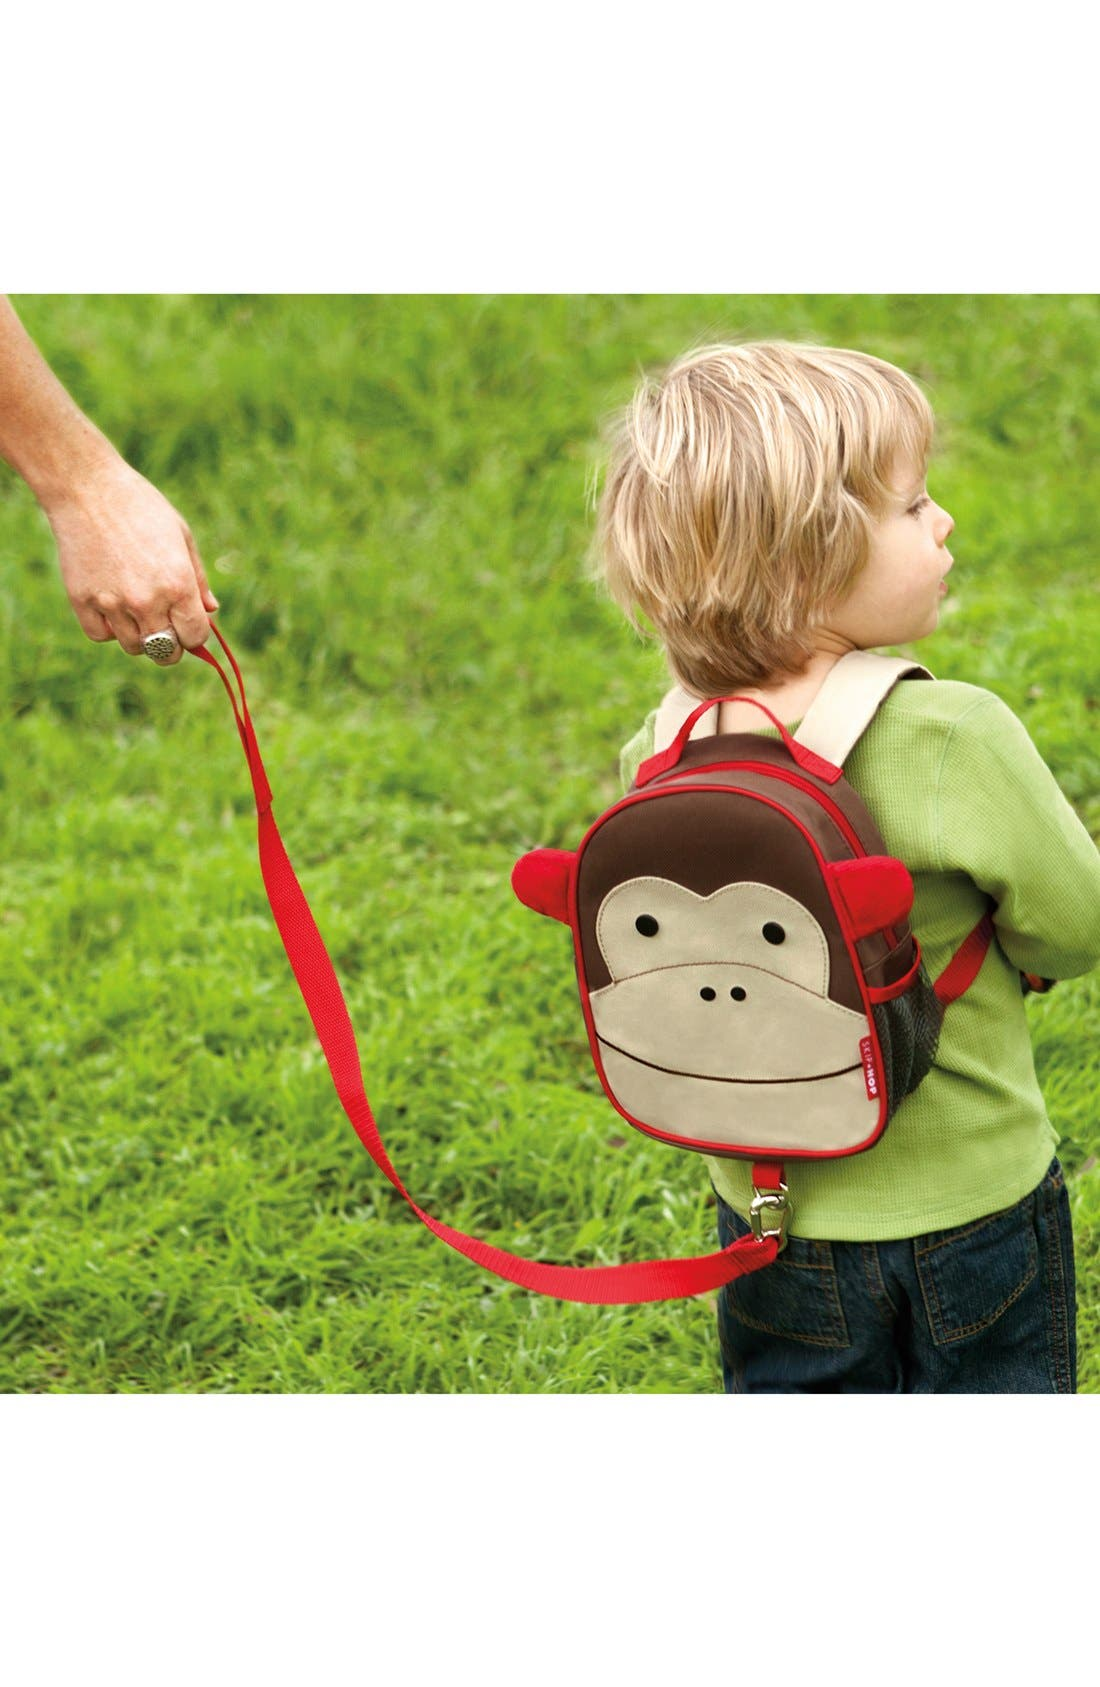 'Zoo' Safety Harness Backpack,                             Alternate thumbnail 4, color,                             Brown